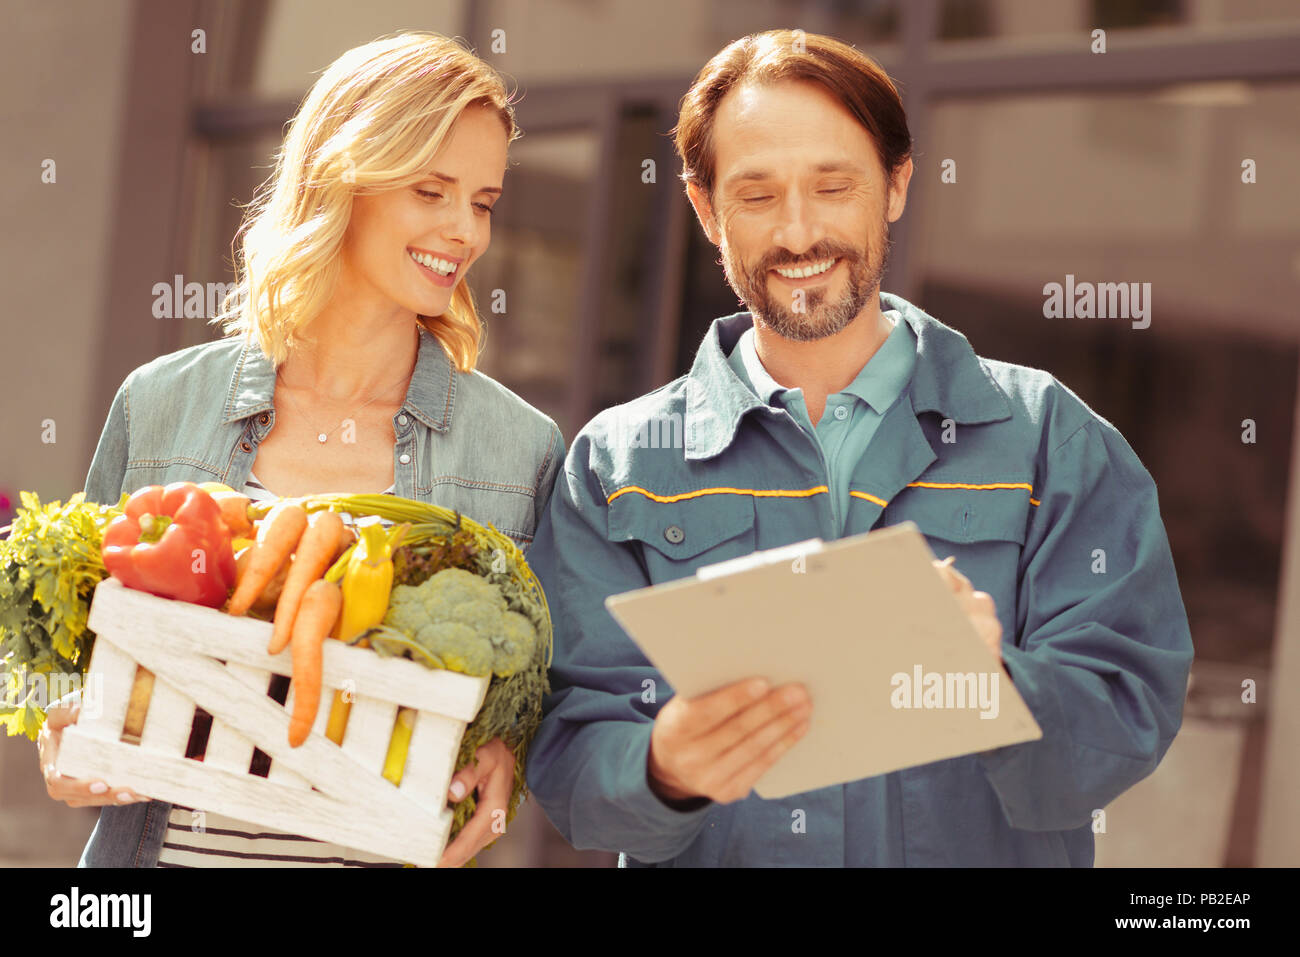 Smiling deliveryman standing near his client - Stock Image